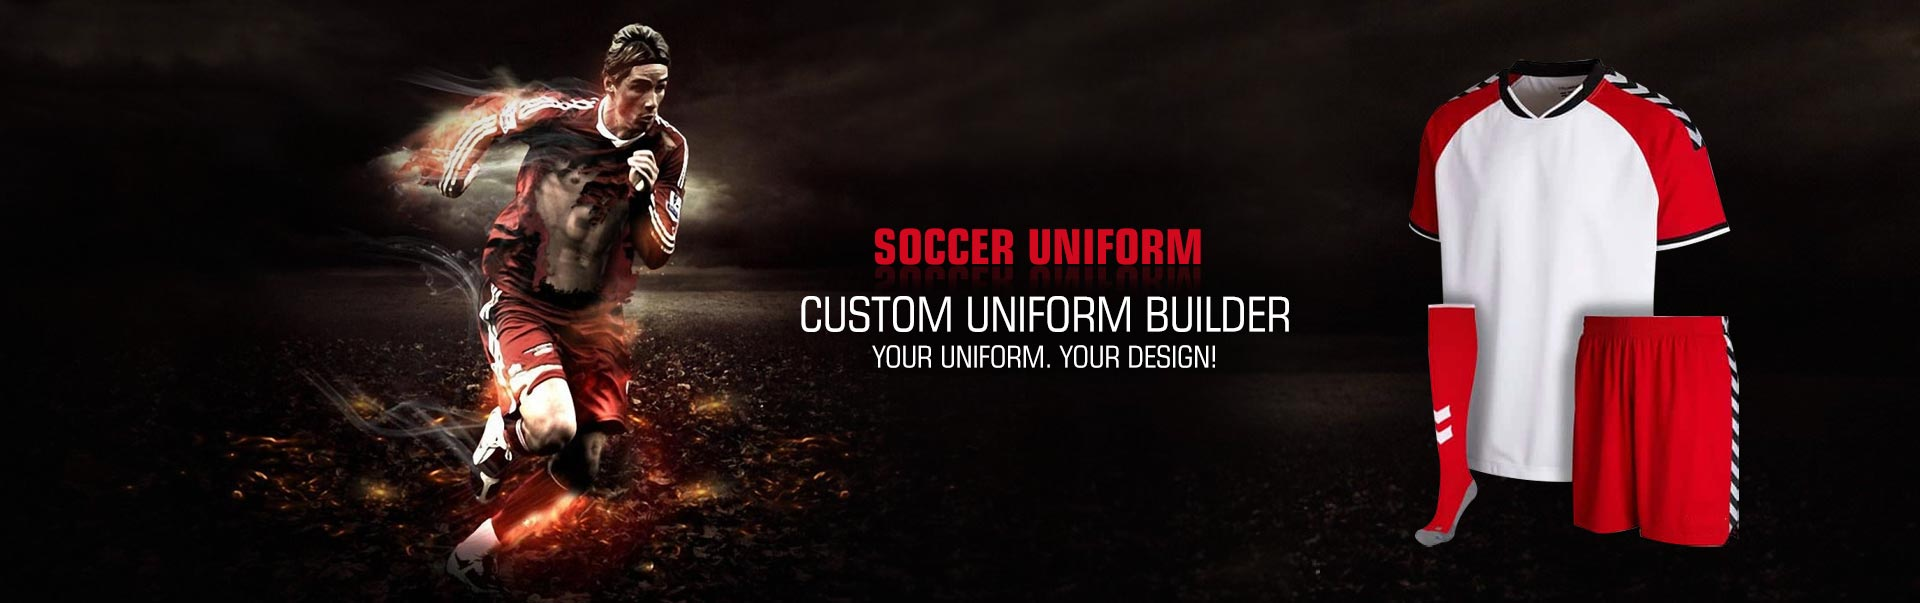 Soccer Uniform Wholesaler, Suppliers in Eugene